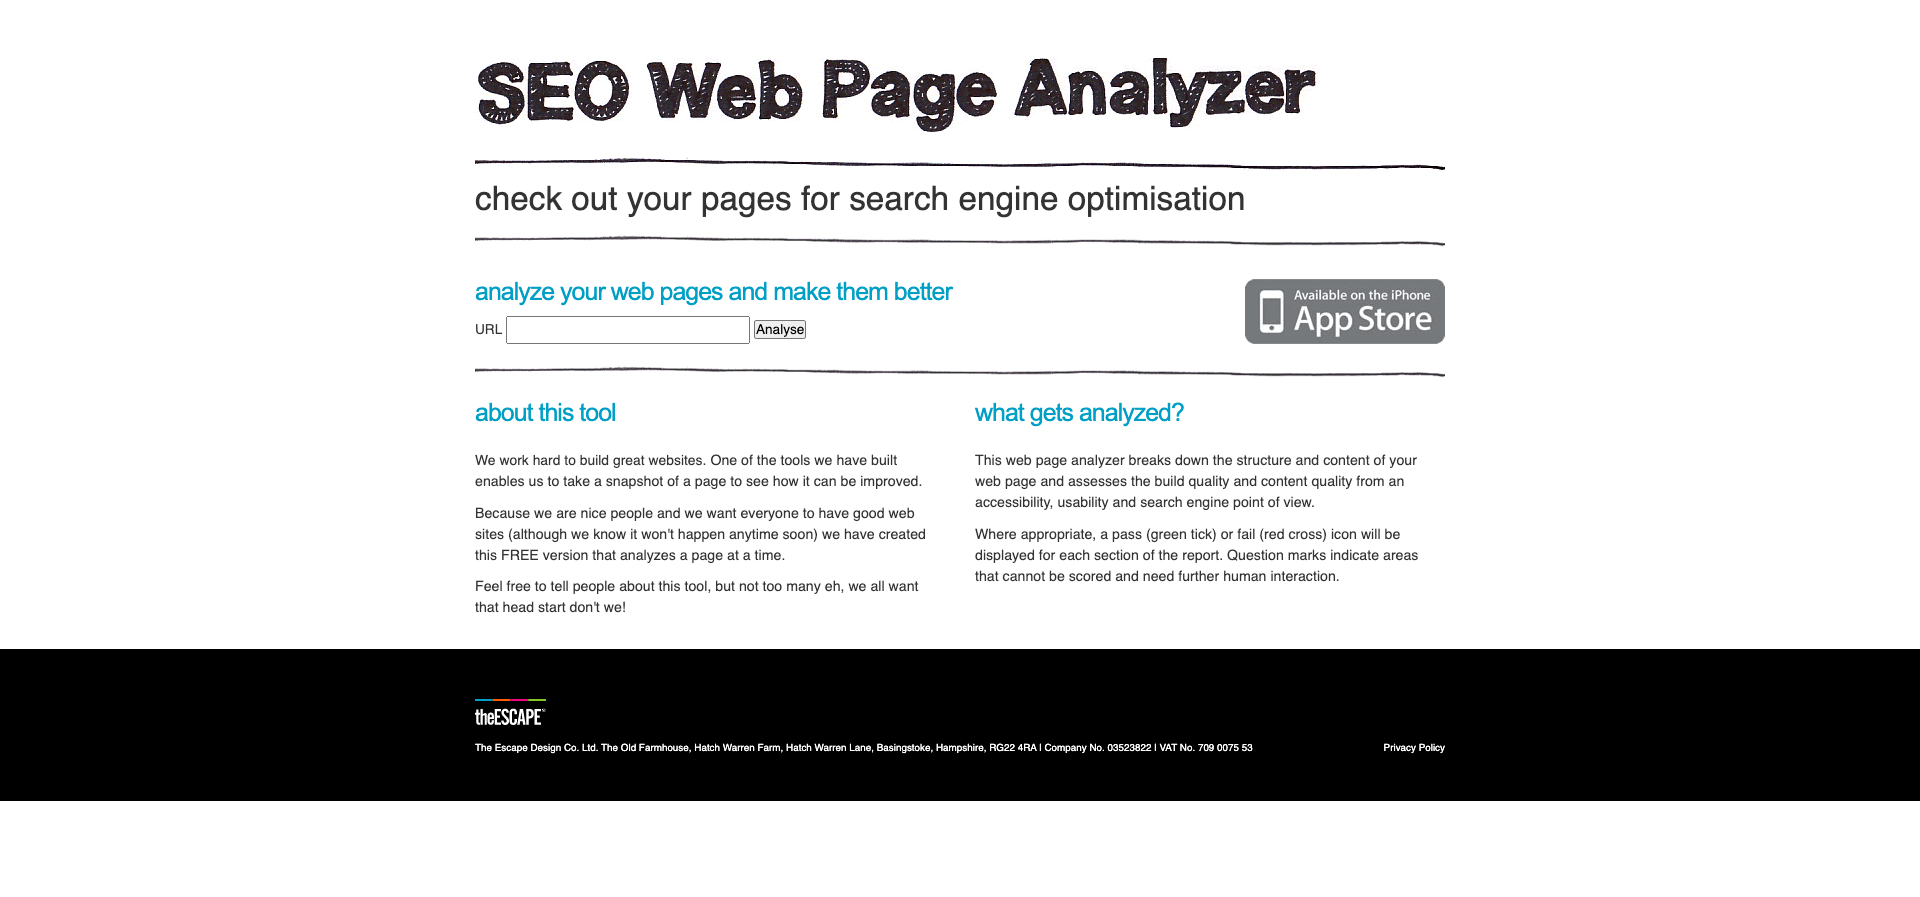 check out your pages for search engine optimisation